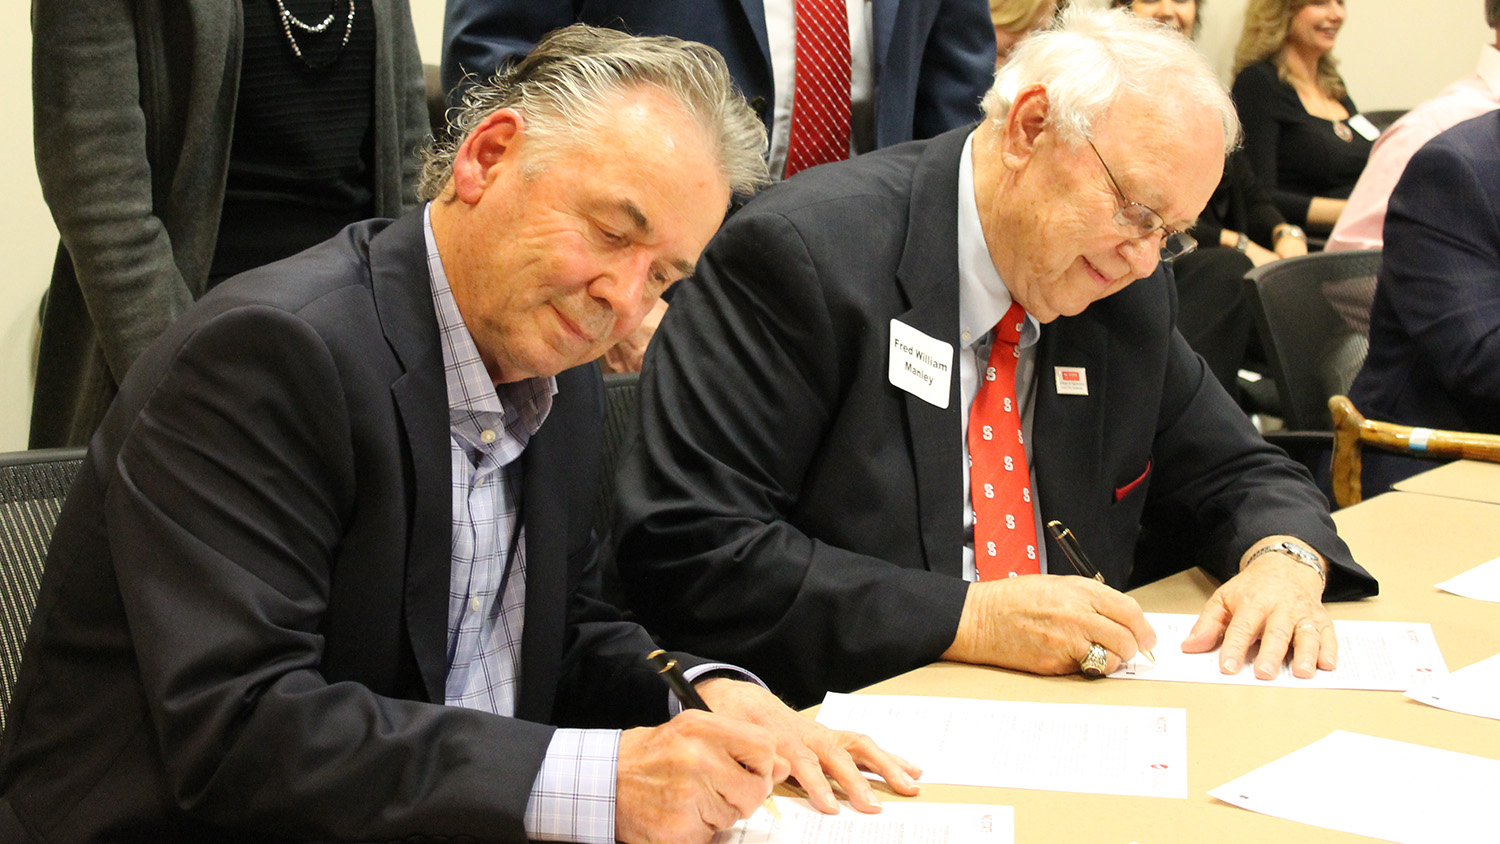 Two men seated at a table, signing papers.